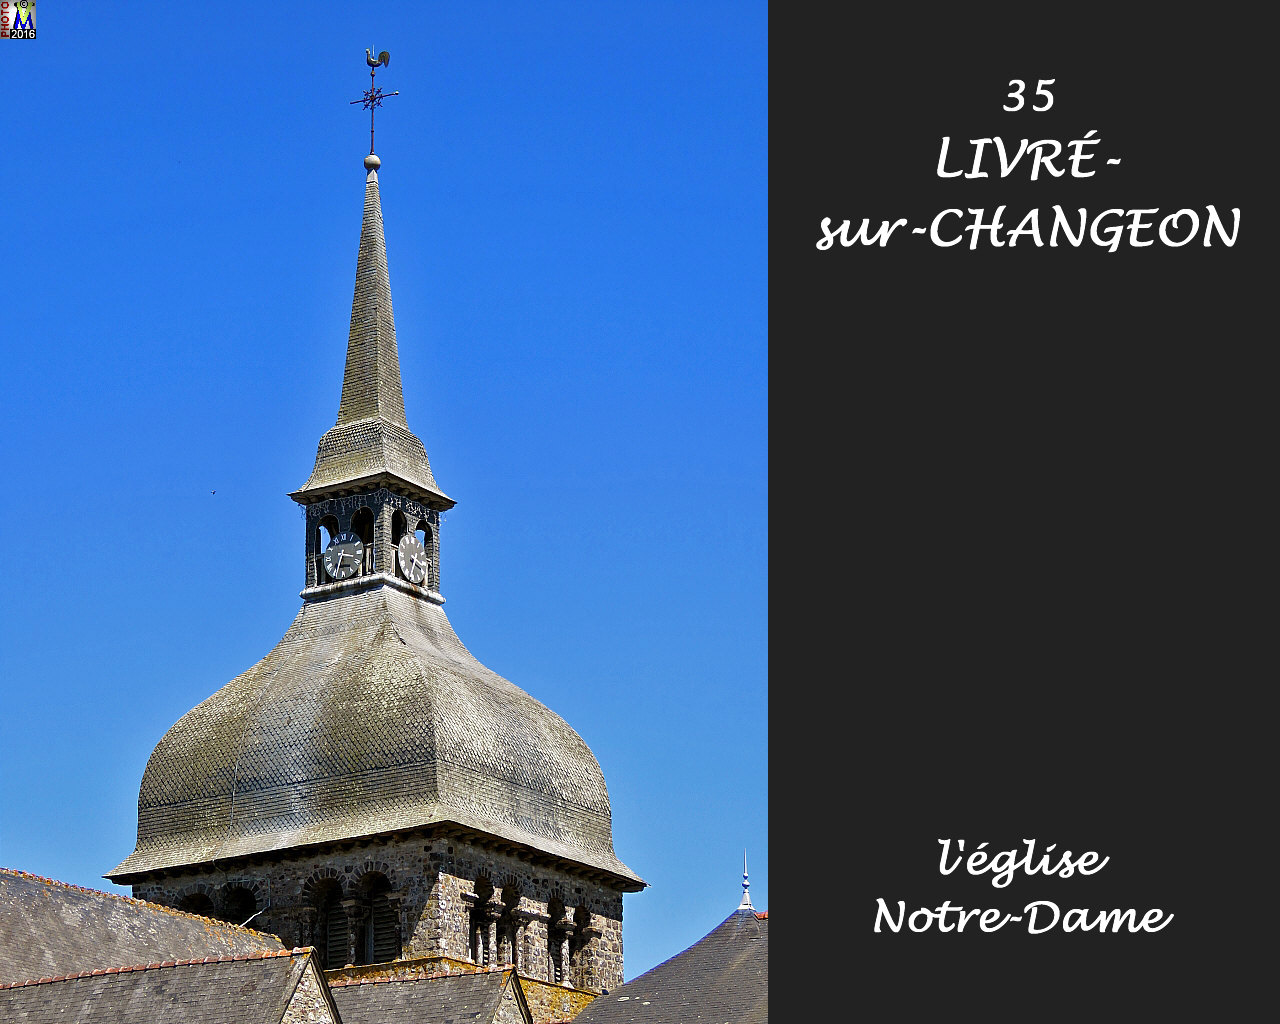 35LIVRE-CHANGEON_eglise_108.jpg